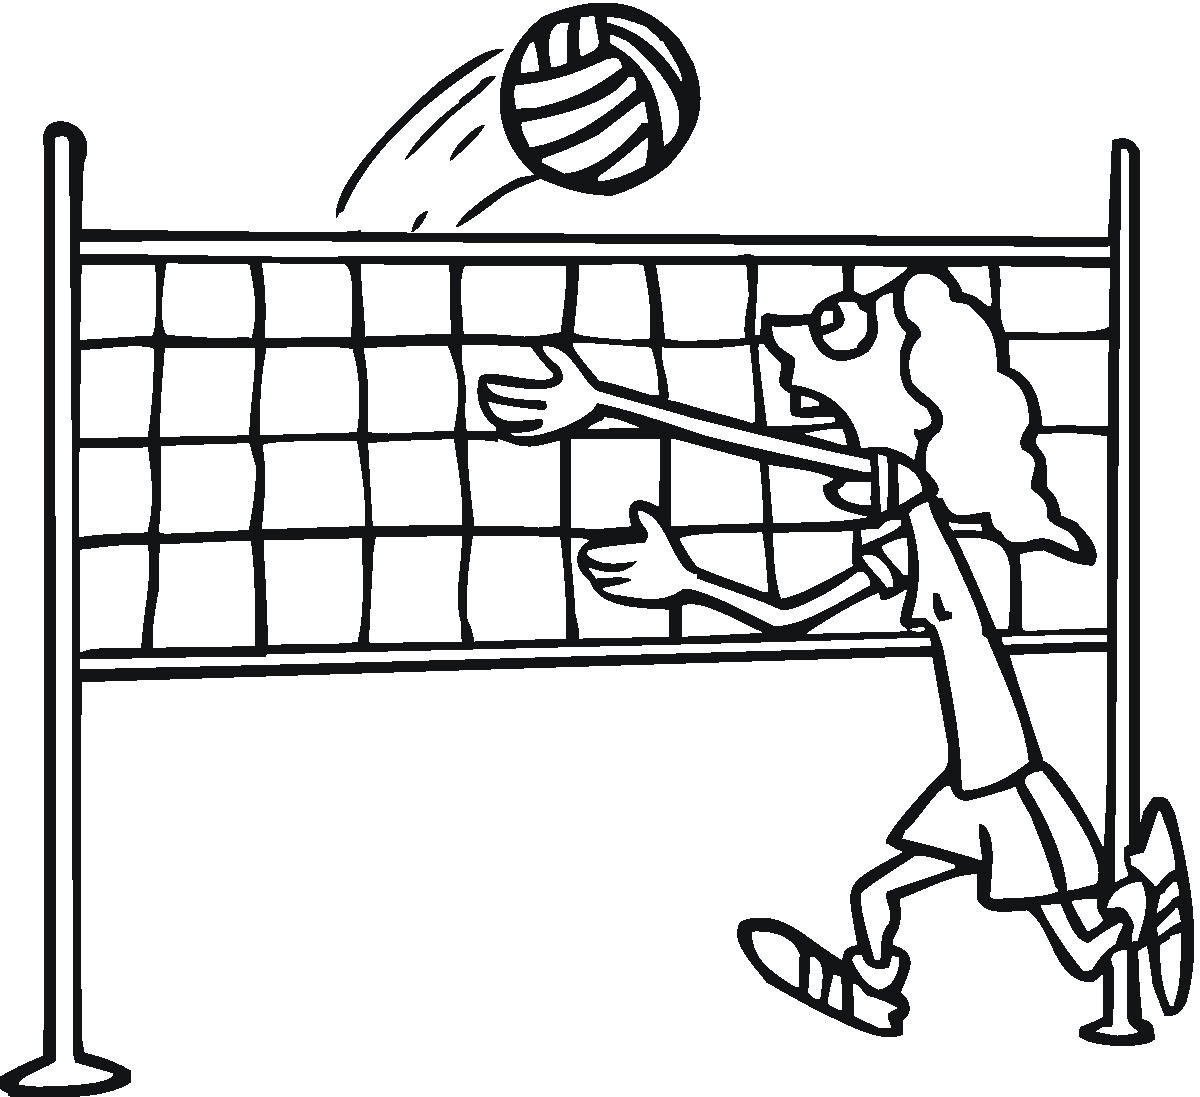 Image #17658 - Coloriage volleyball gratuit